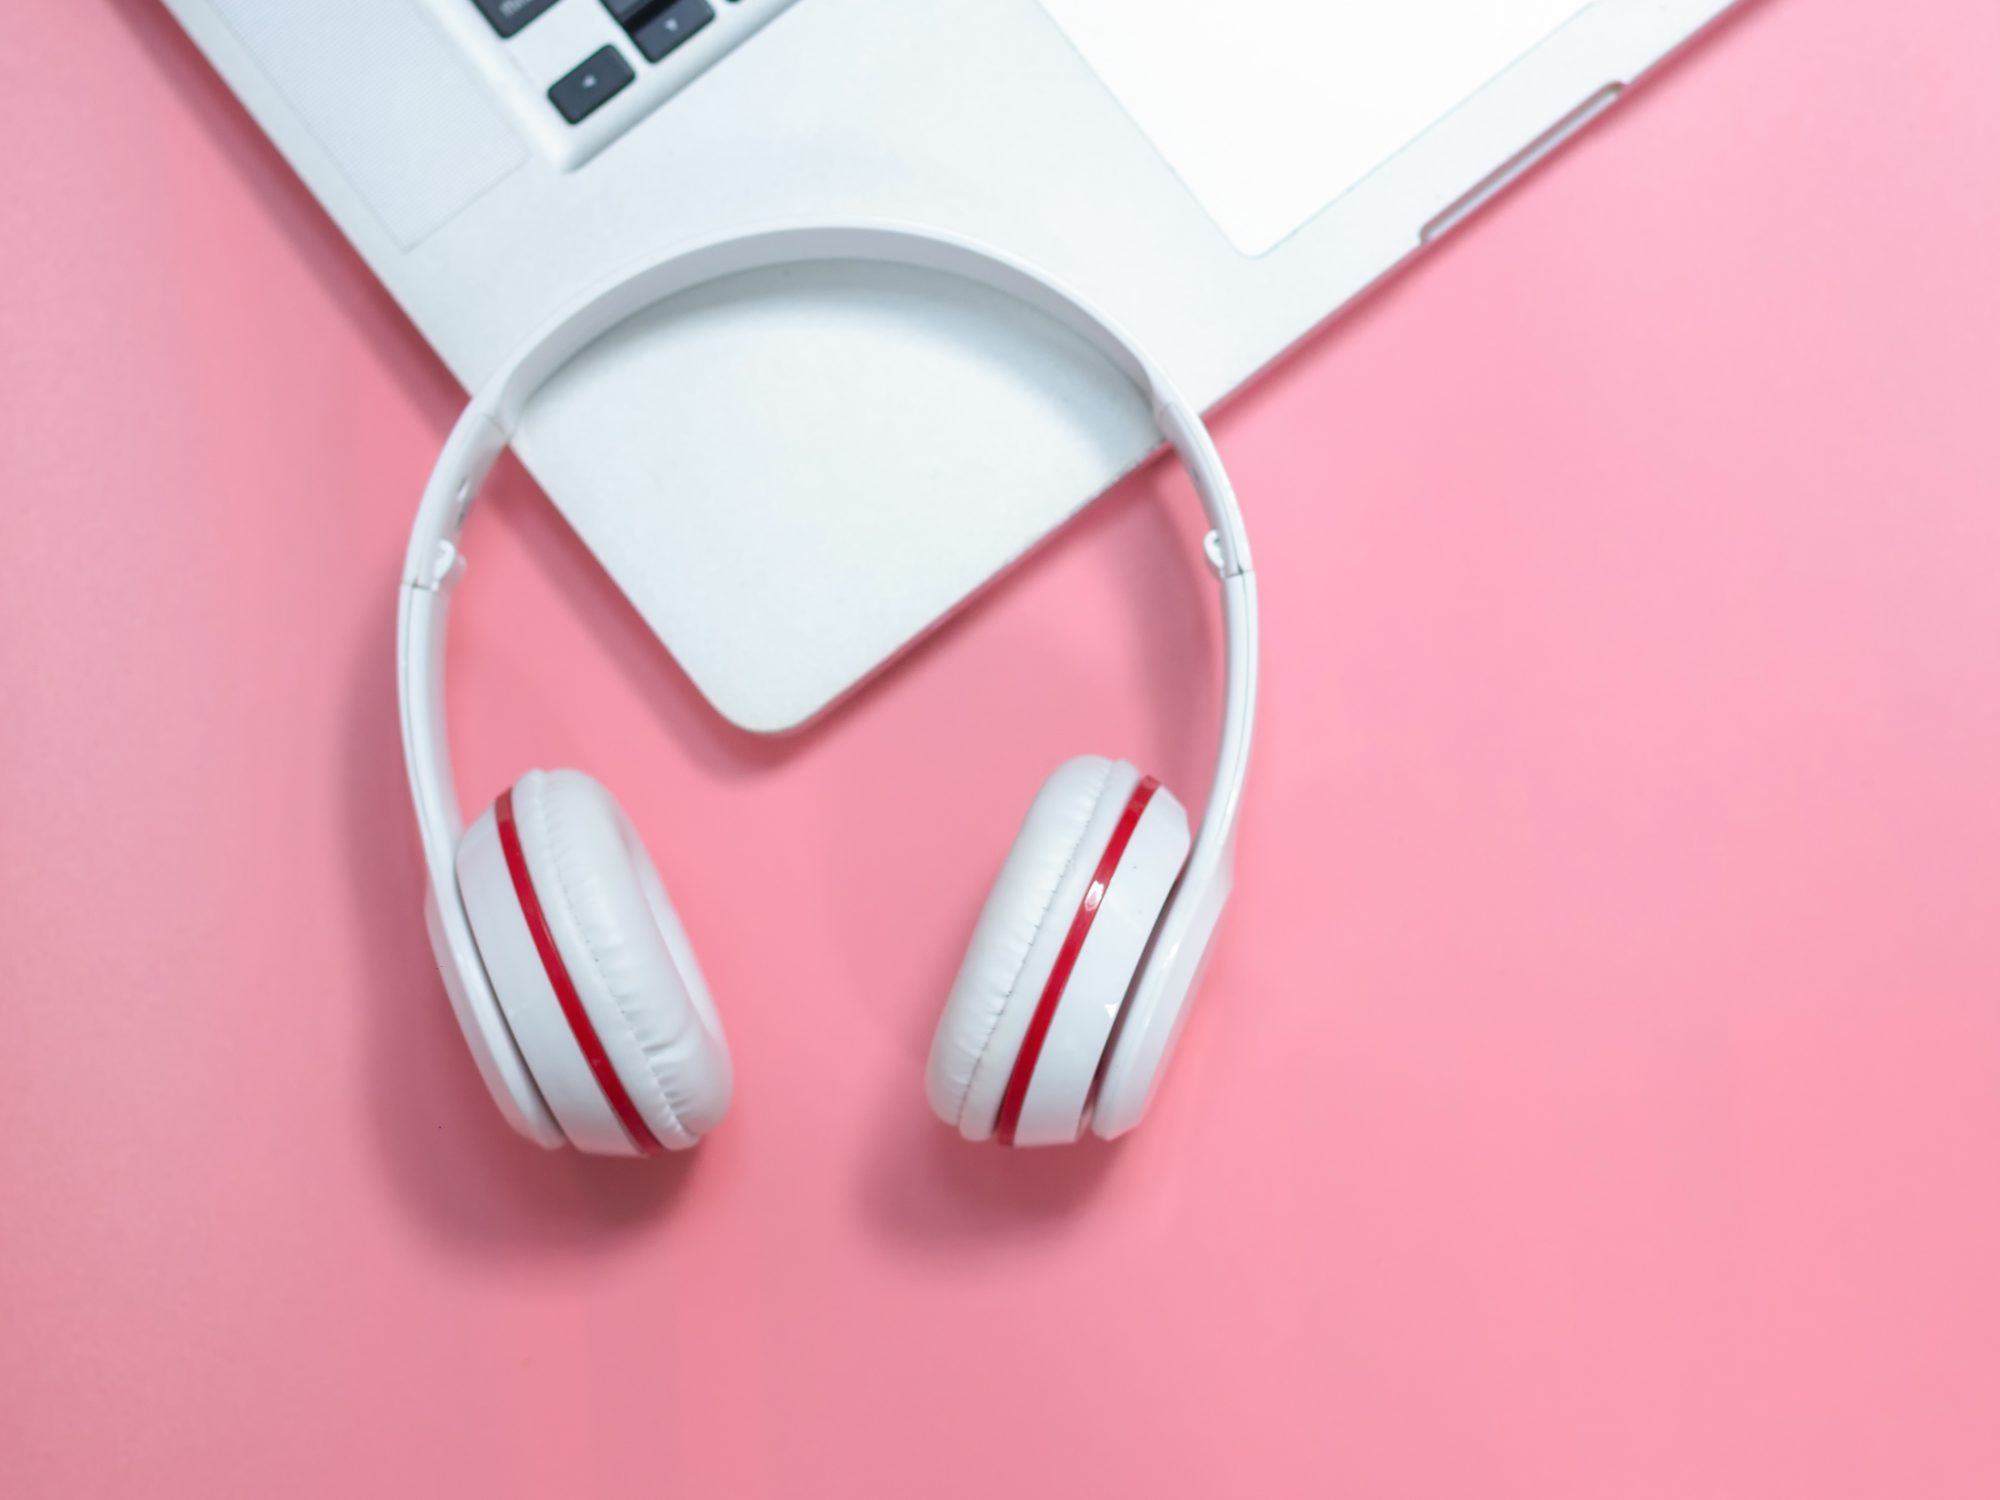 Podcasts to Listen to While Working: headphones and keyboard on a pink background